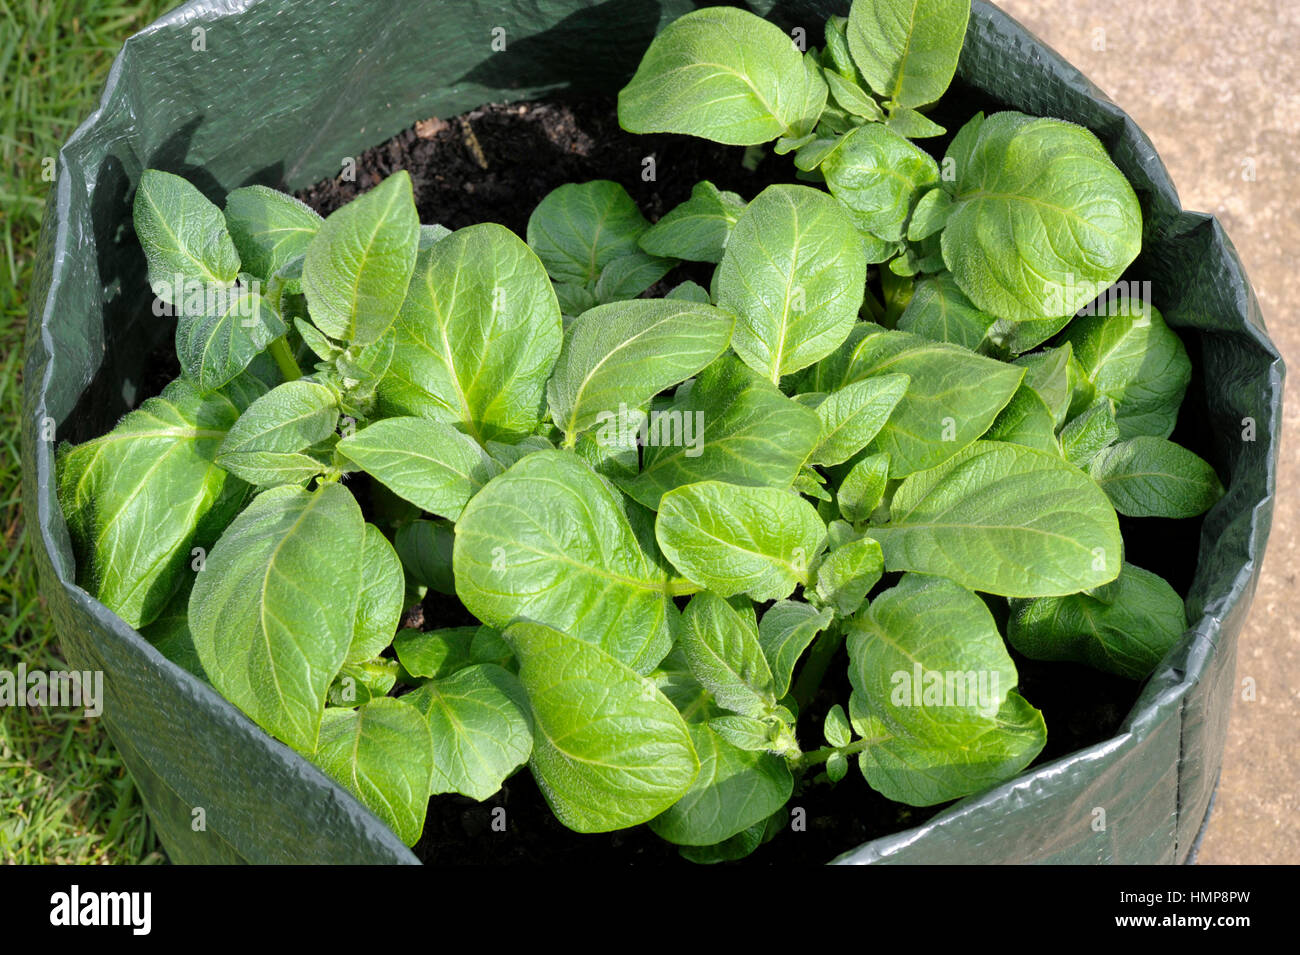 Perfect Potatoes Growing In A Space Saving Patio Bag Or Vegetable Grow Bag Of  Compost. Variety